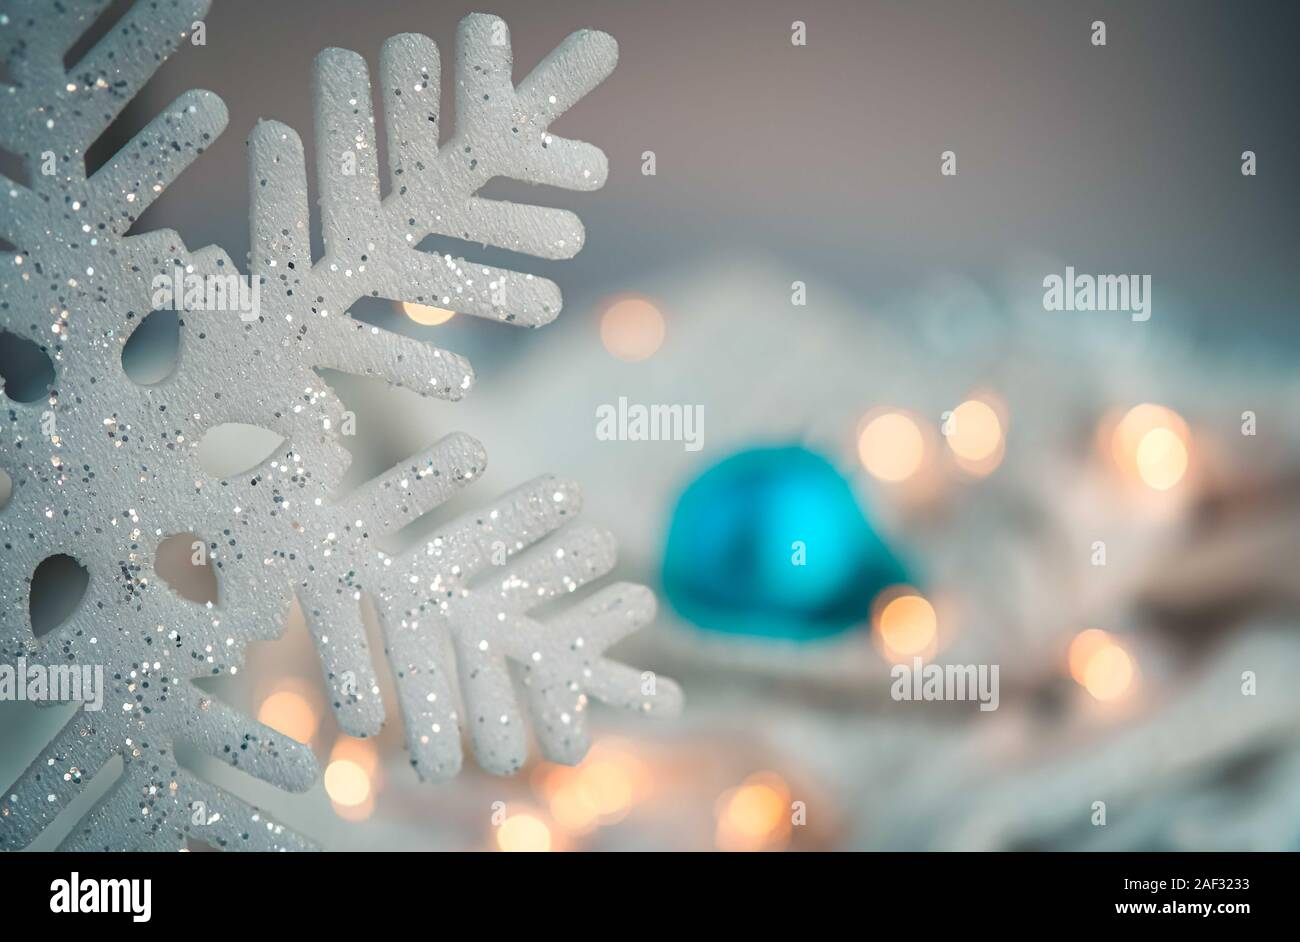 White And Blue Holiday Decorations On Silver Background Christmas Balls Candle And Fairy Lights Color Of The Year Concept Stock Photo Alamy